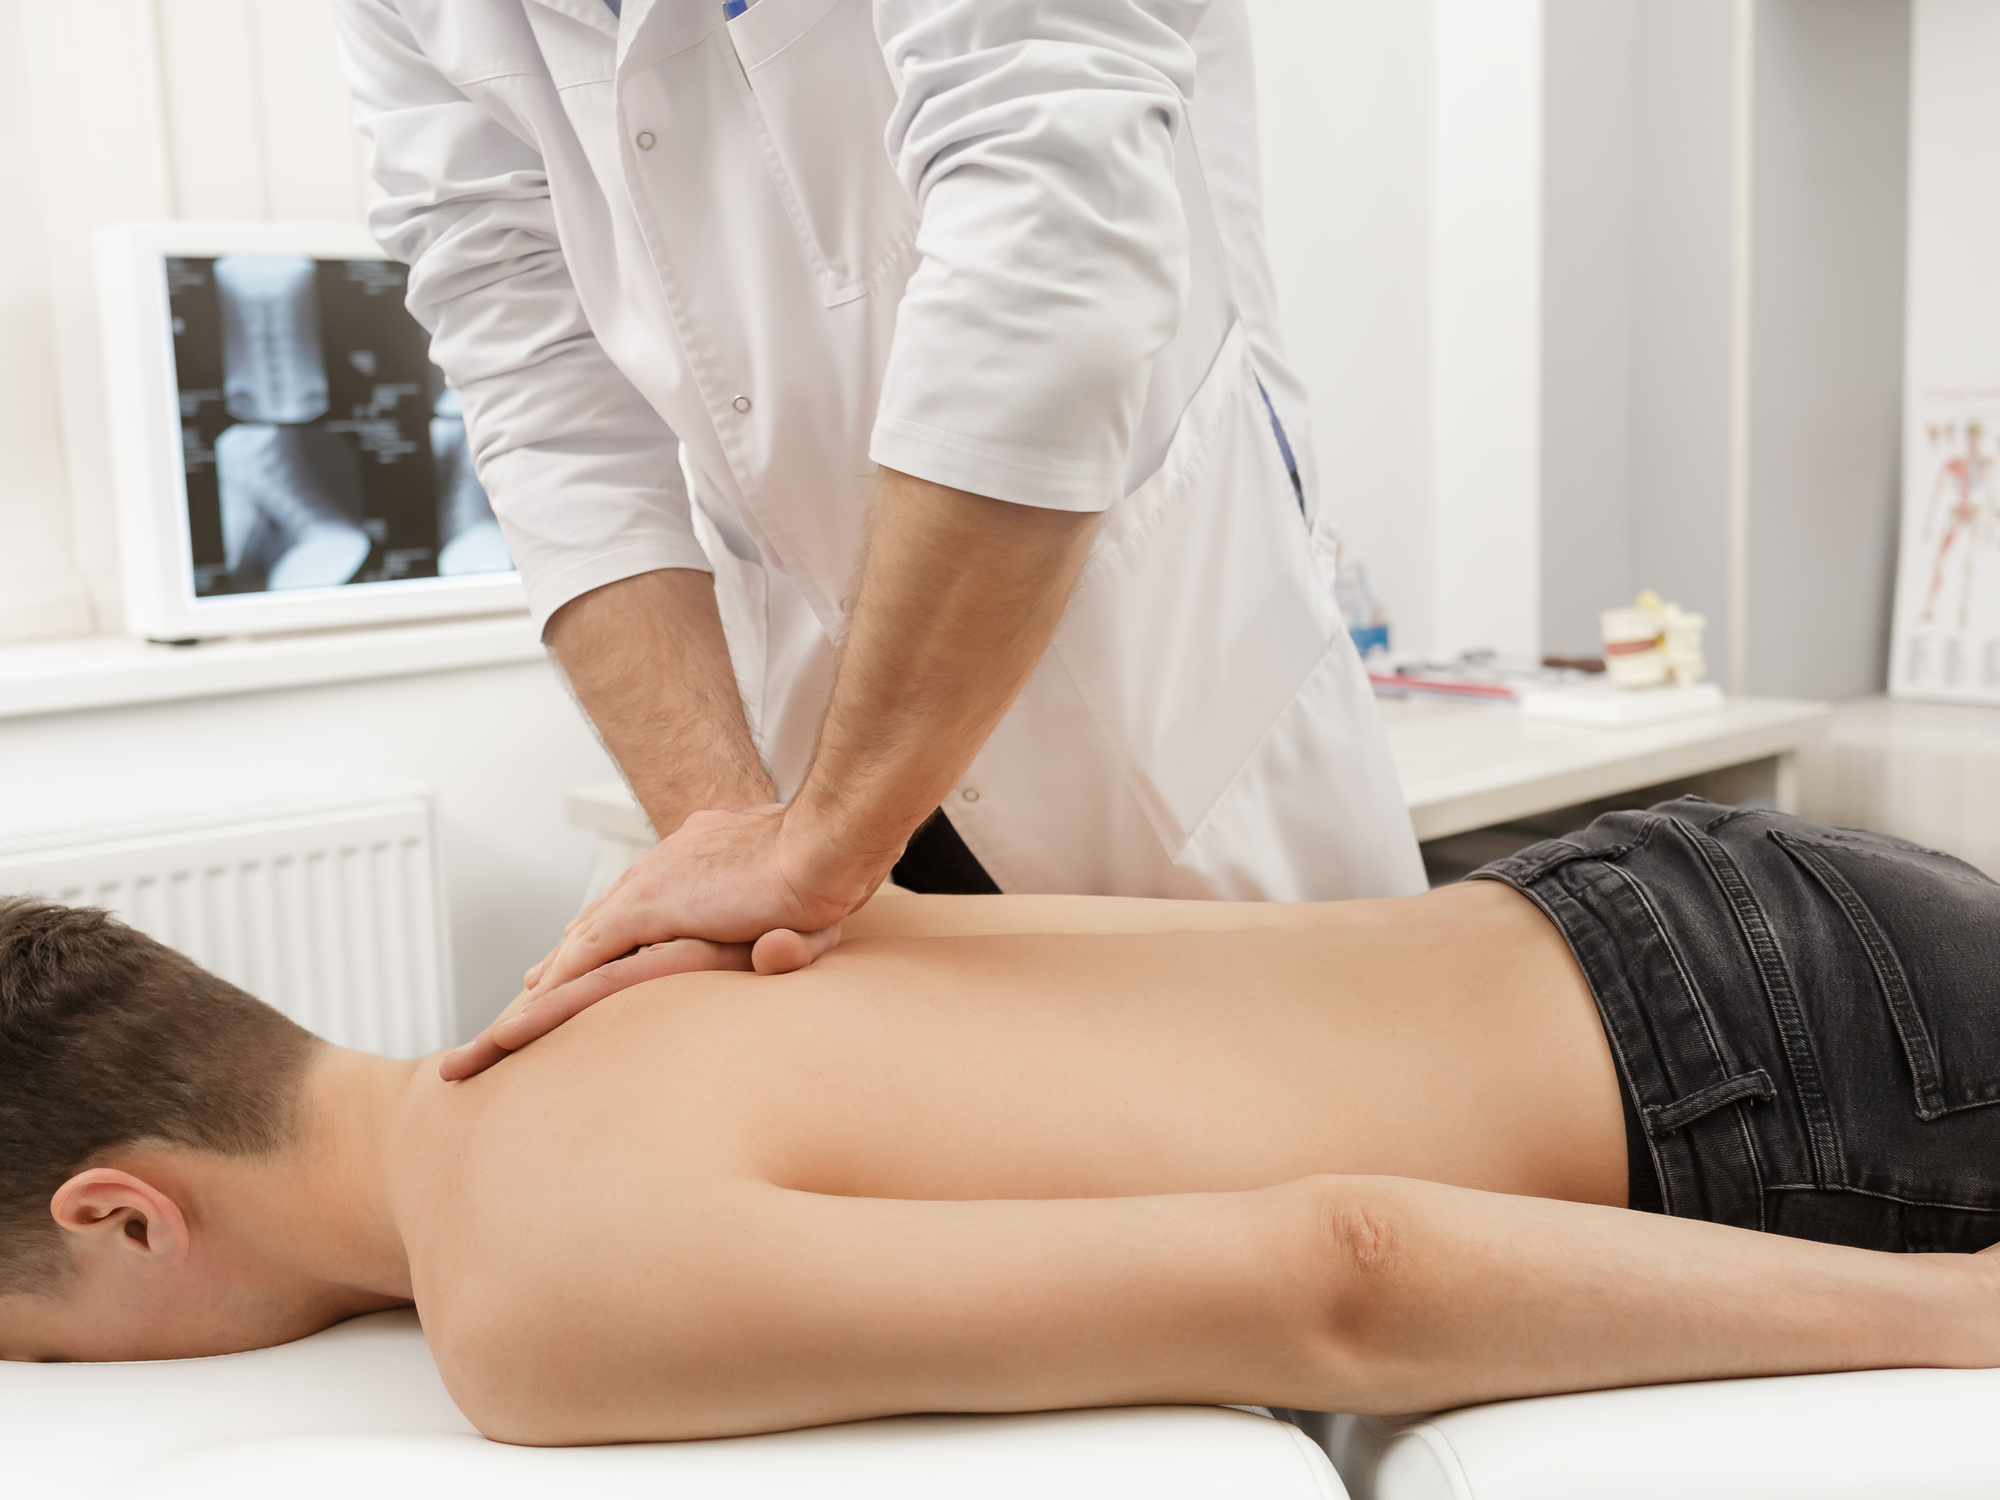 What Are the Benefits of a Spinal Adjustment?